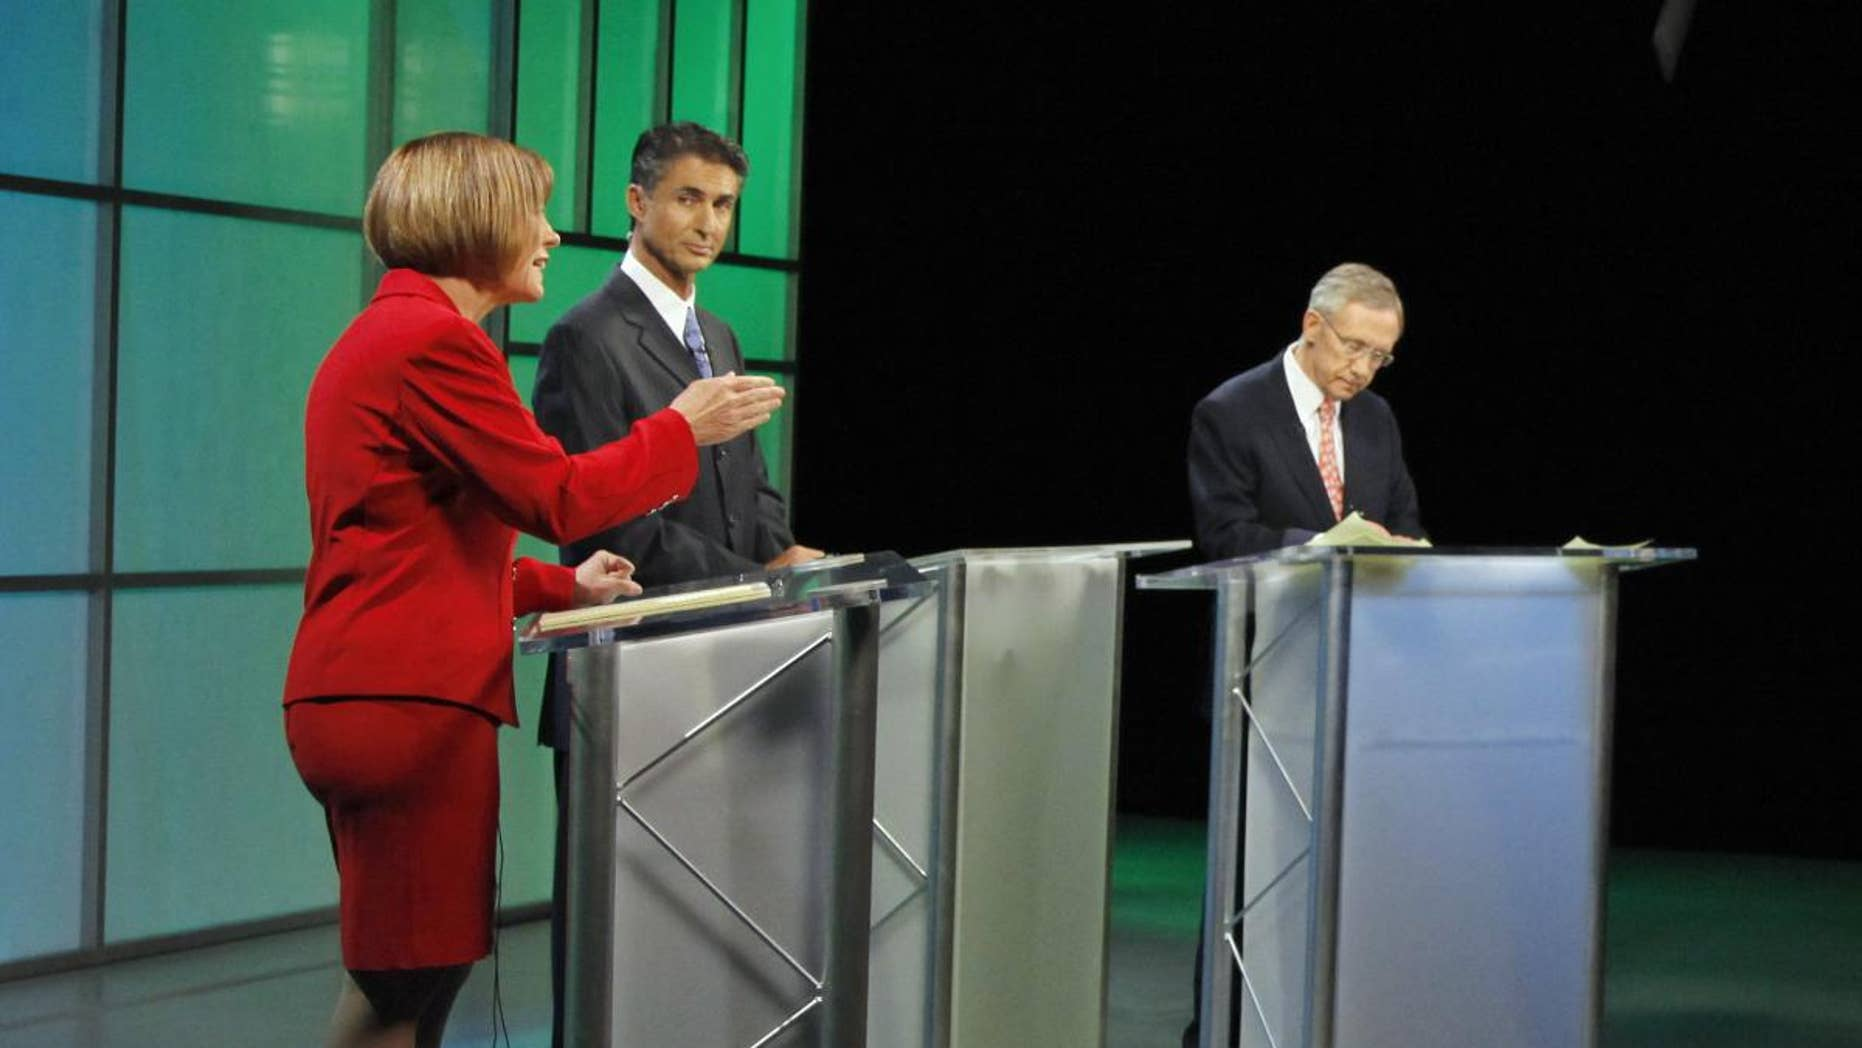 Republican Senate candidate Sharron Angle, left, speaks as moderator Mitch Fox, center, and Senate Majority Leader Harry Reid listen during a televised Nevada Senate debate Oct. 14, 2010, in Las Vegas. (AP Photo)